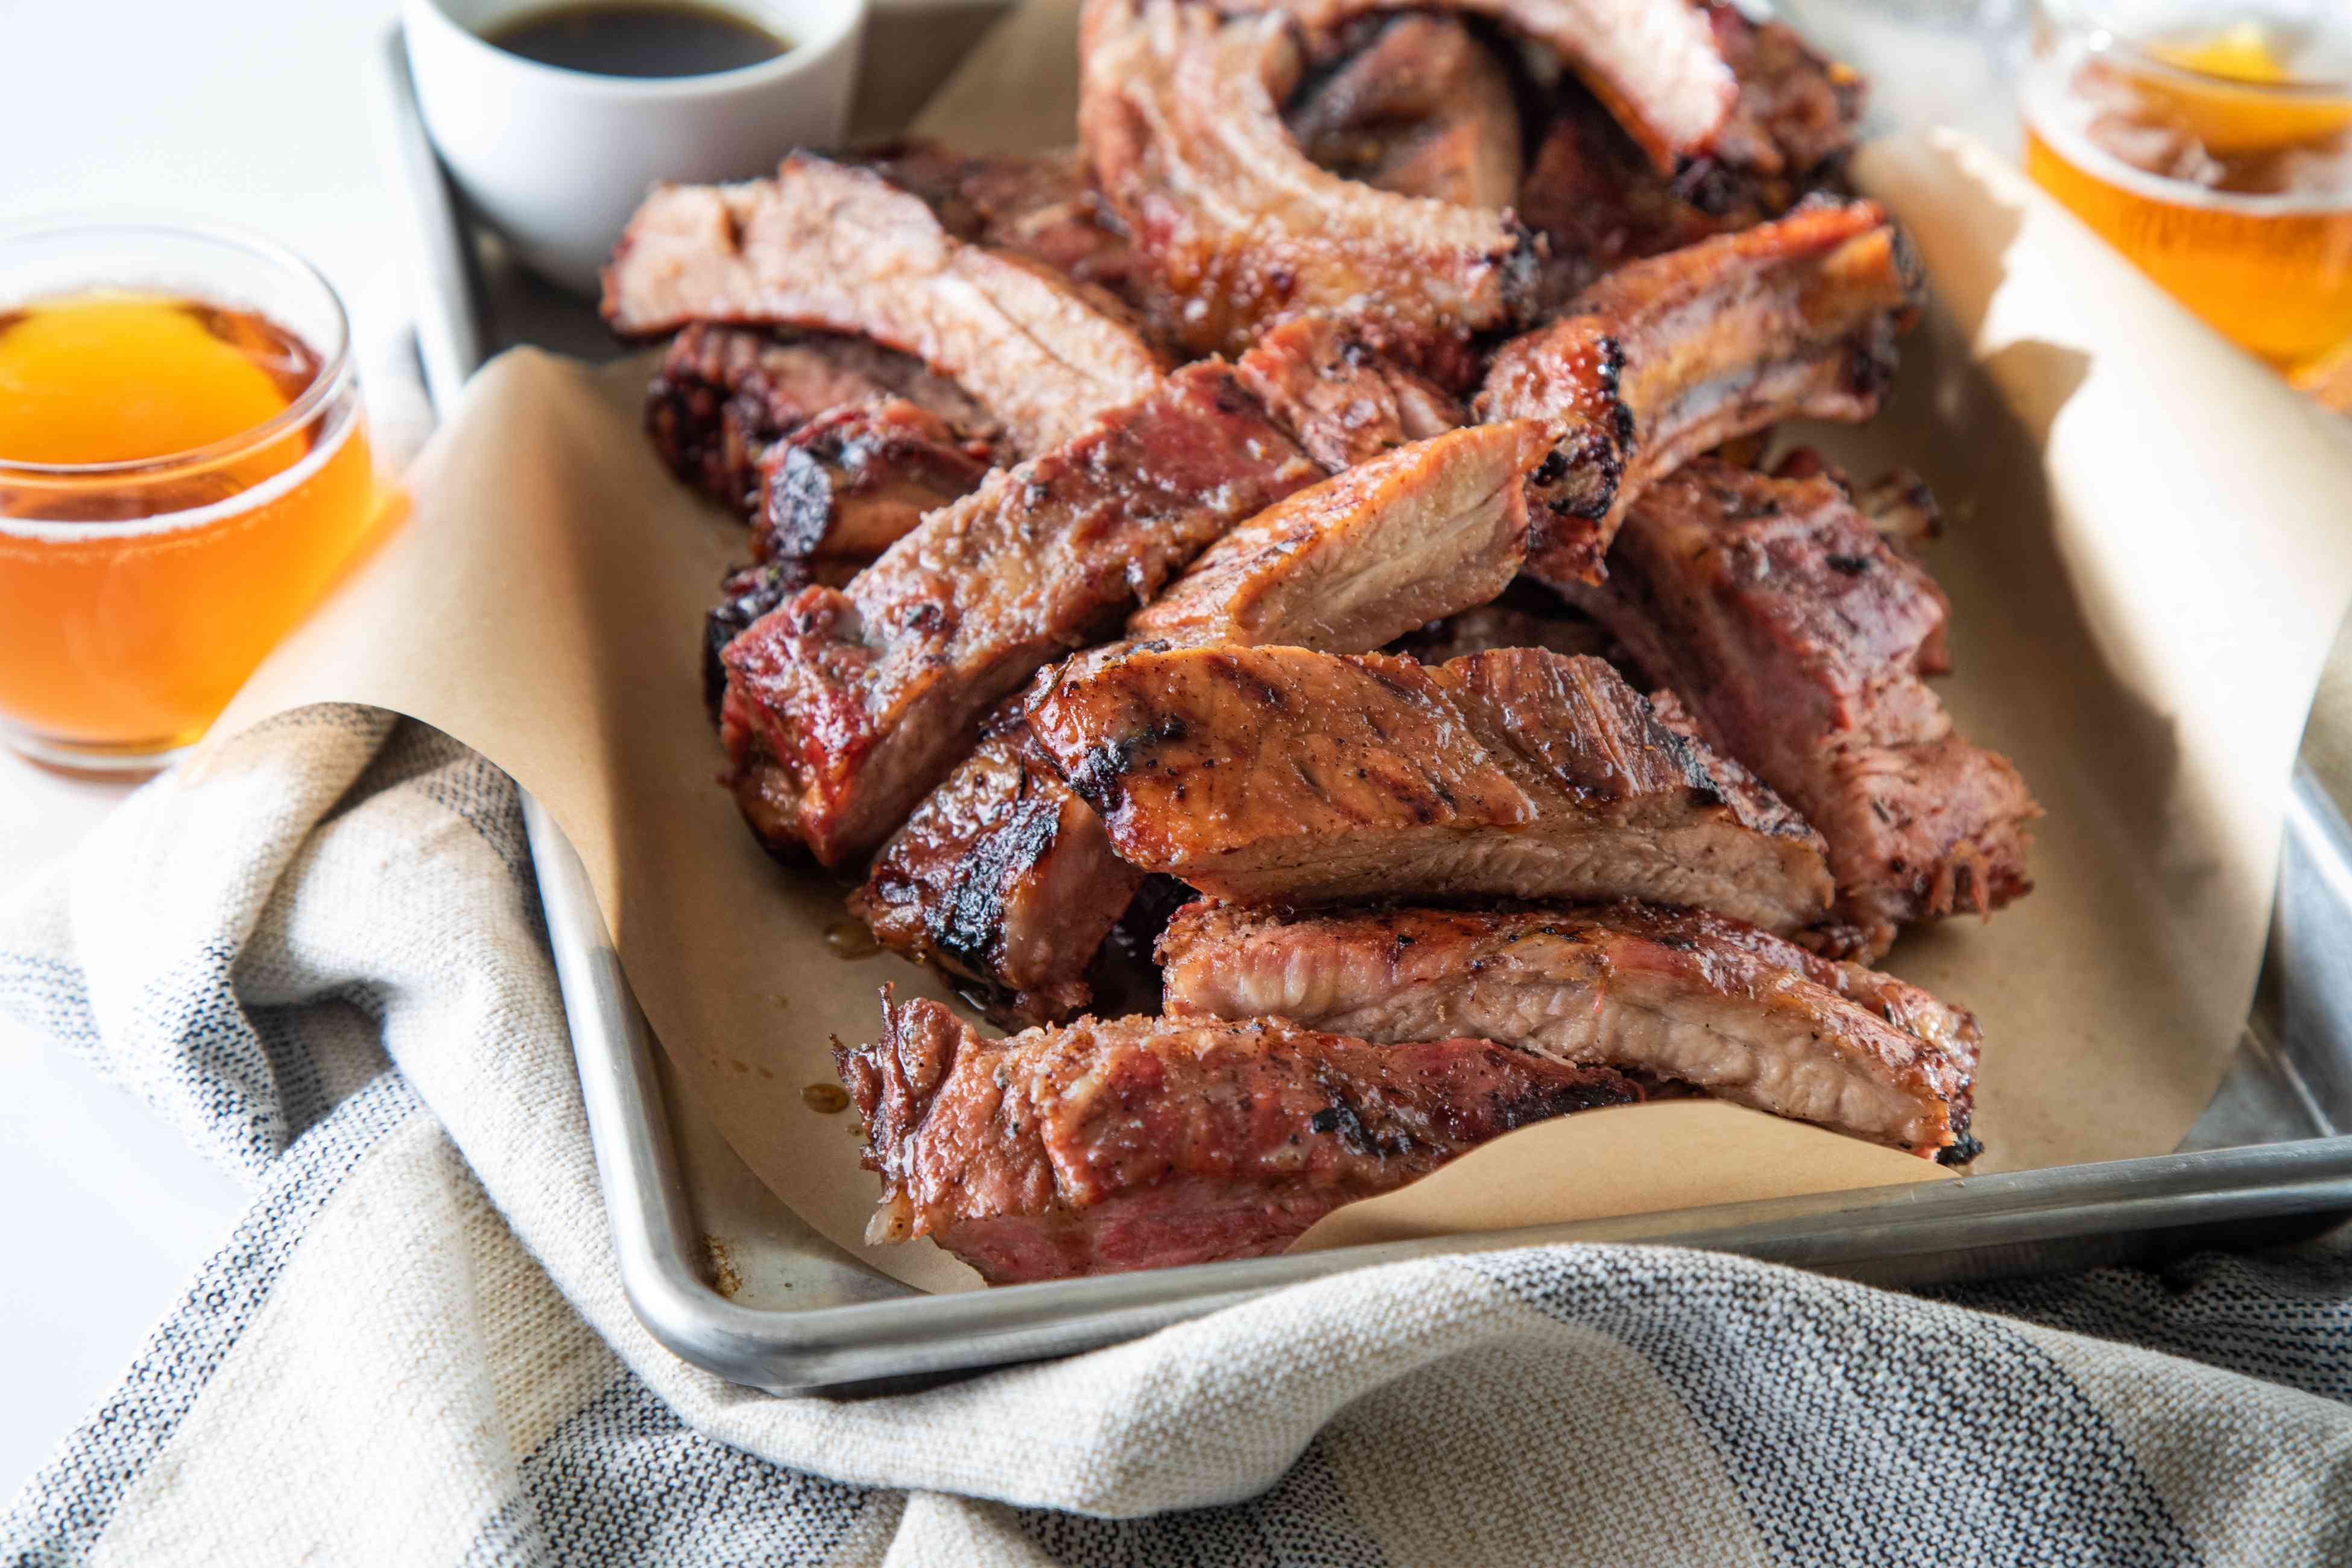 A parchment lined baking sheet with cut ribs from a grilled ribs recipe.